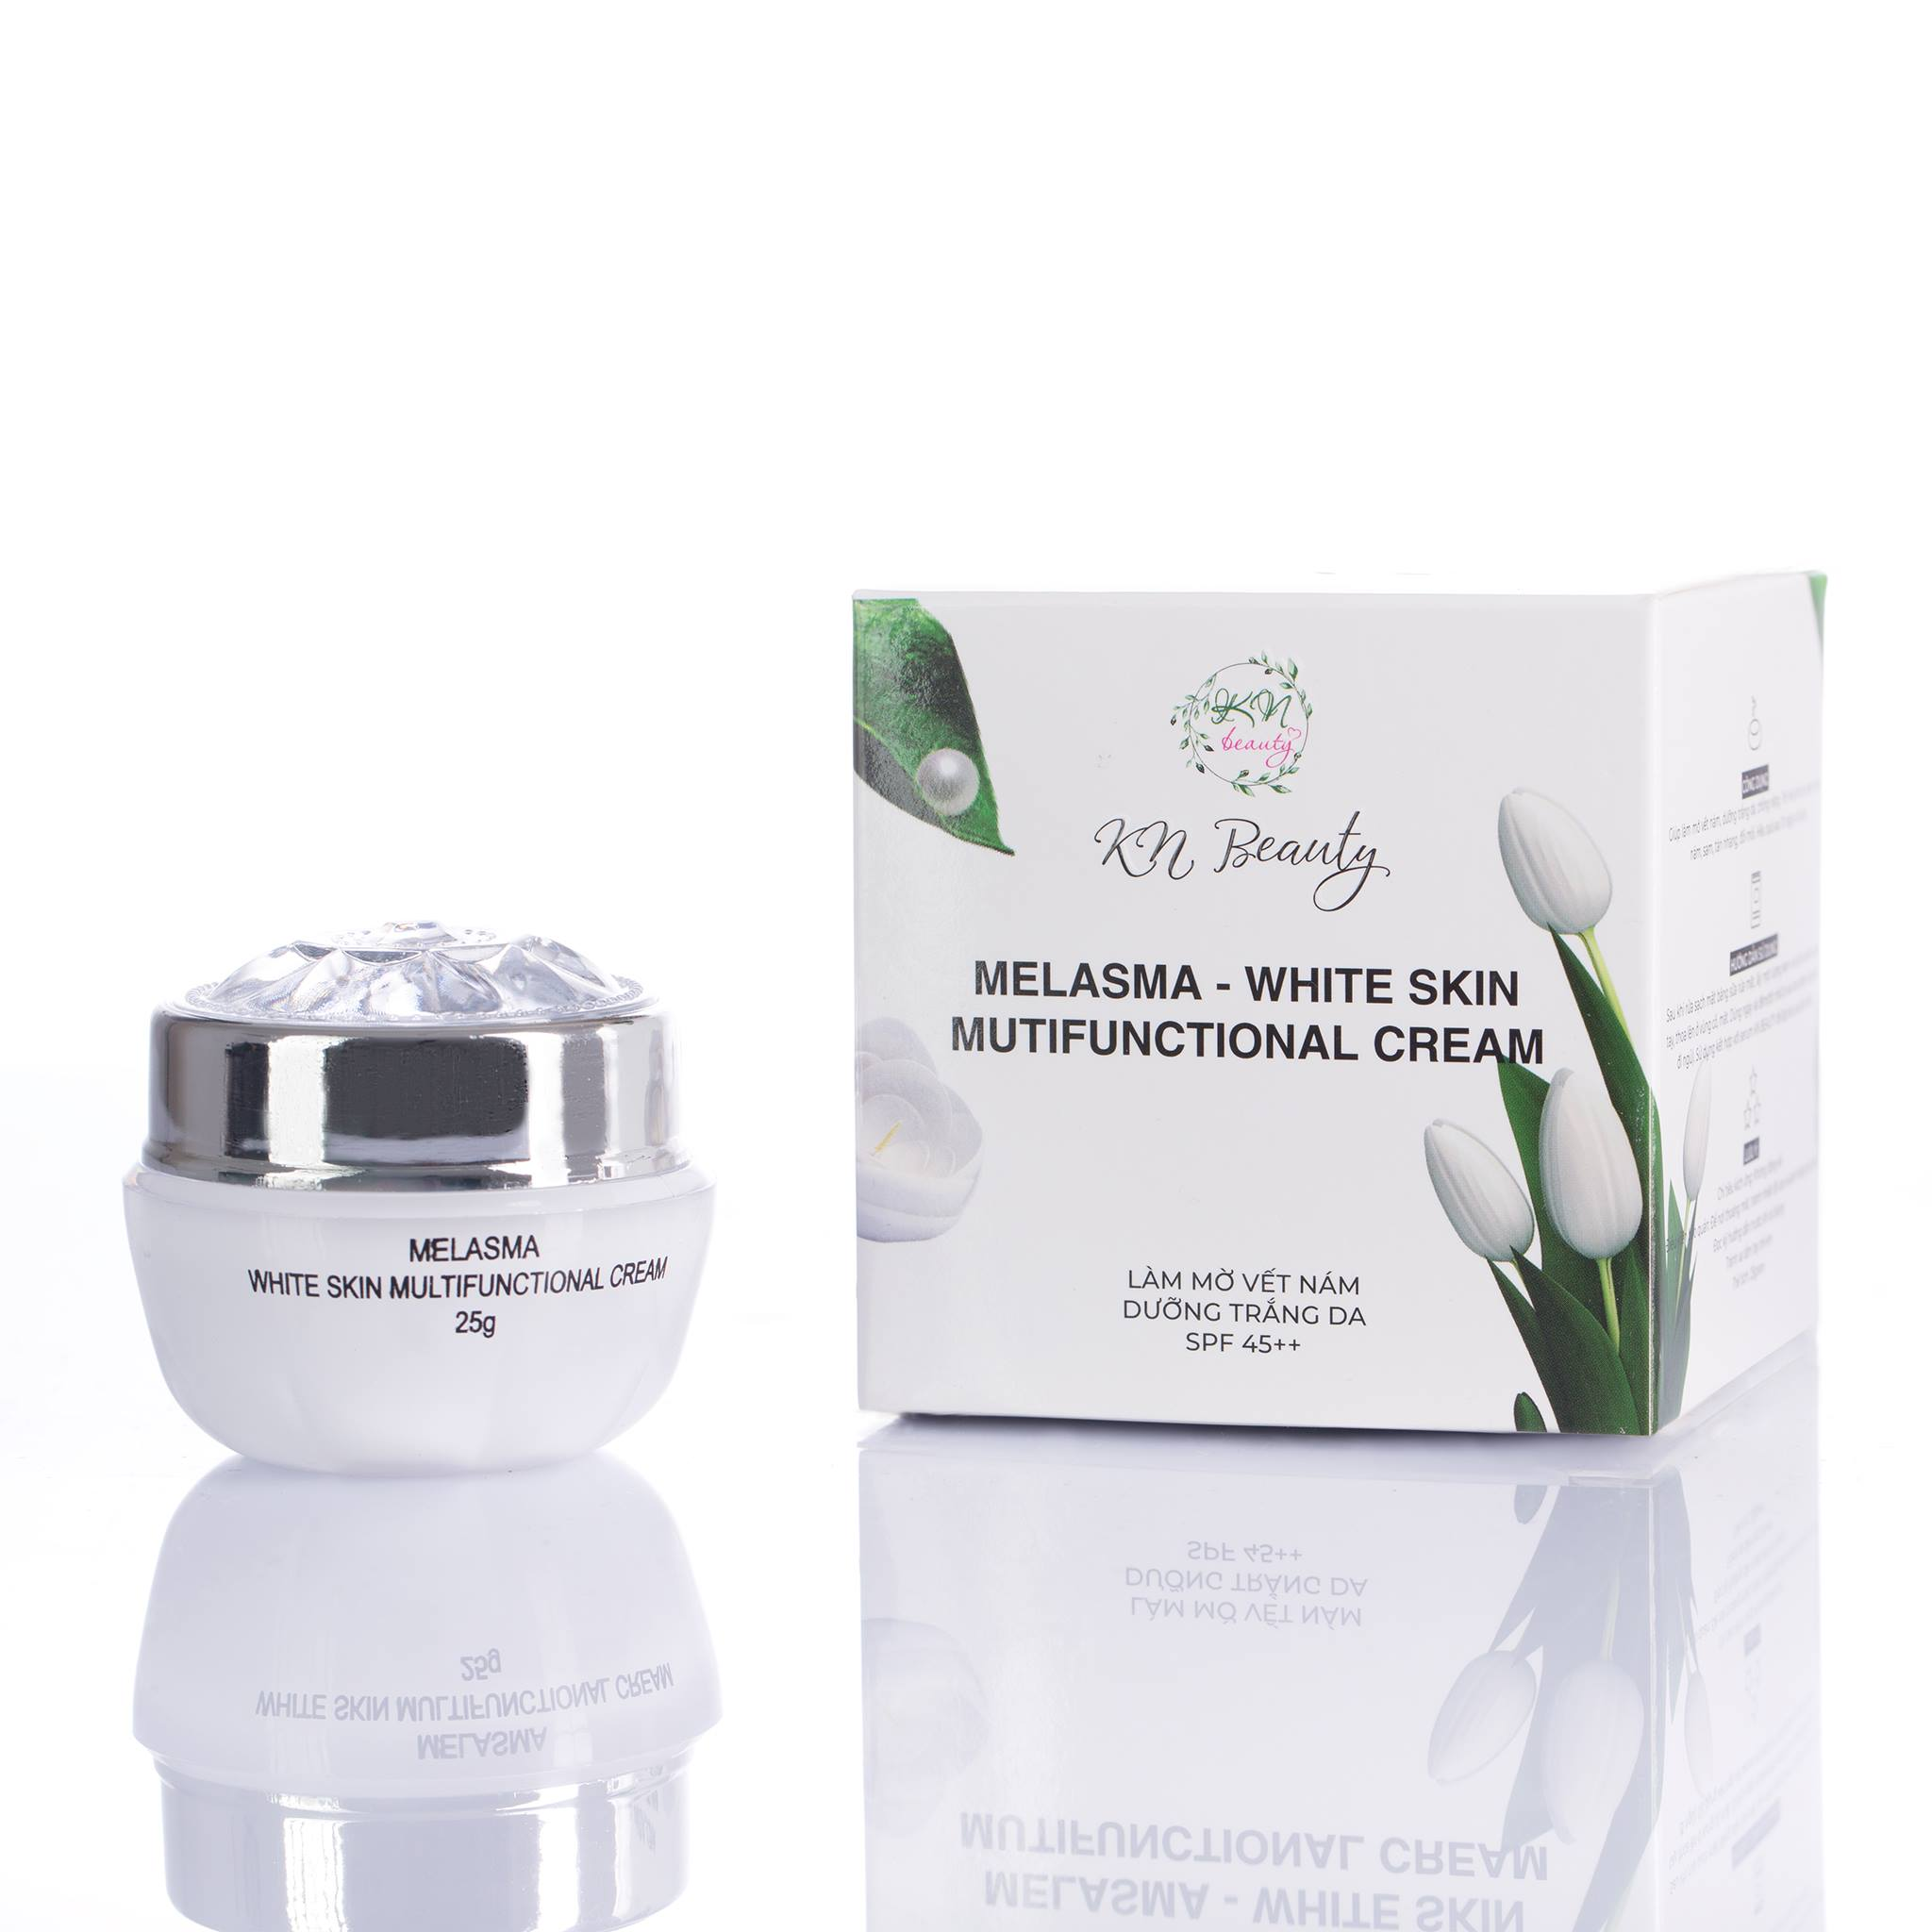 White skin multifunctional cream